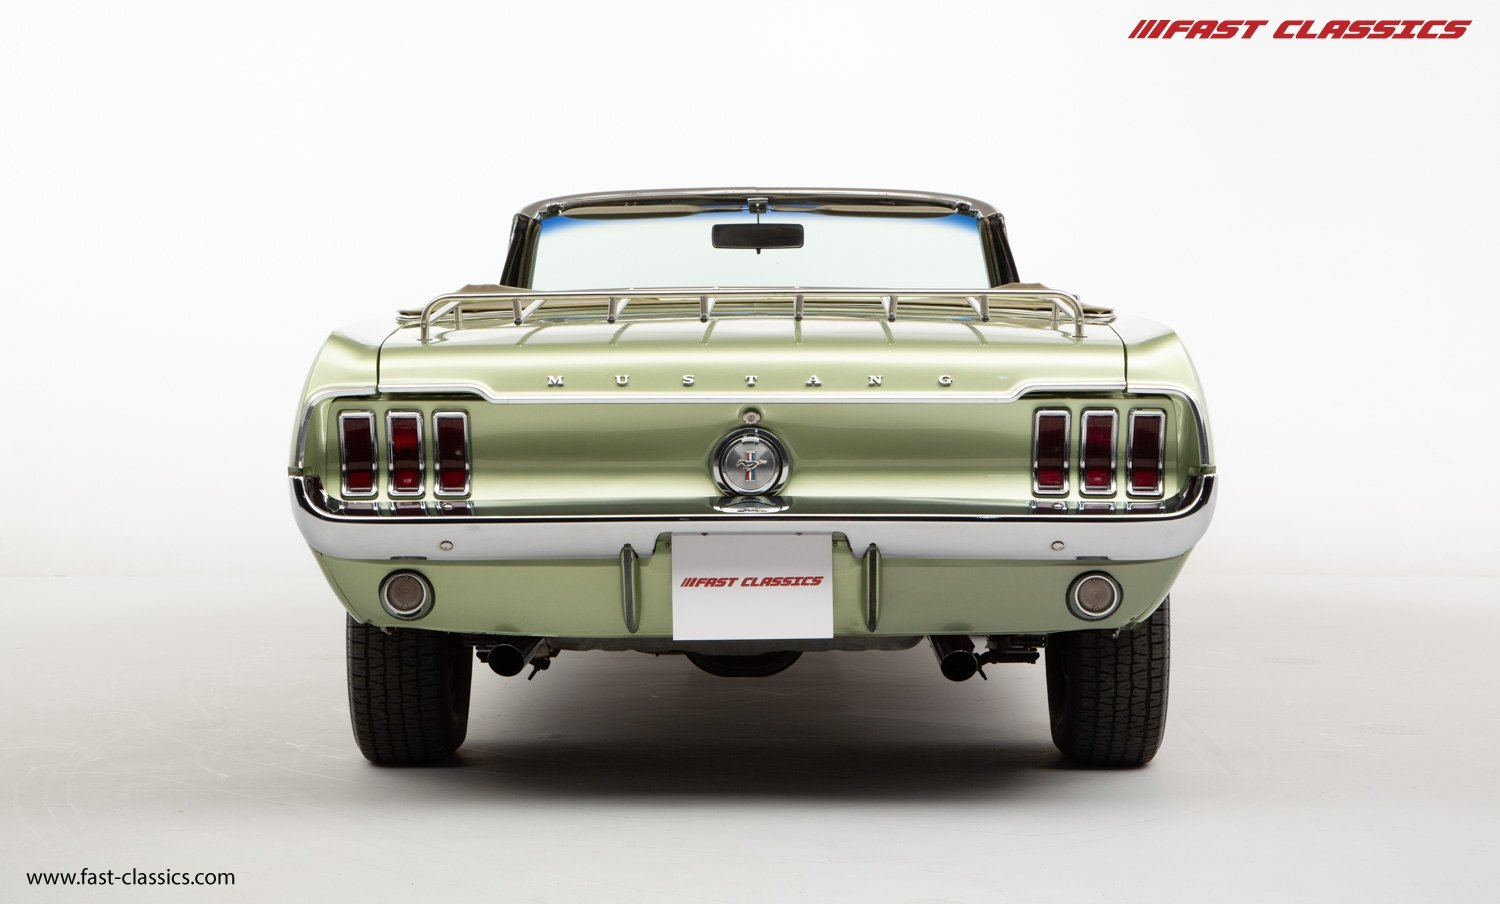 FORD MUSTANG CONVERTIBLE // 1967 FACTORY 4-SPEED MANUAL For Sale (picture 11 of 23)